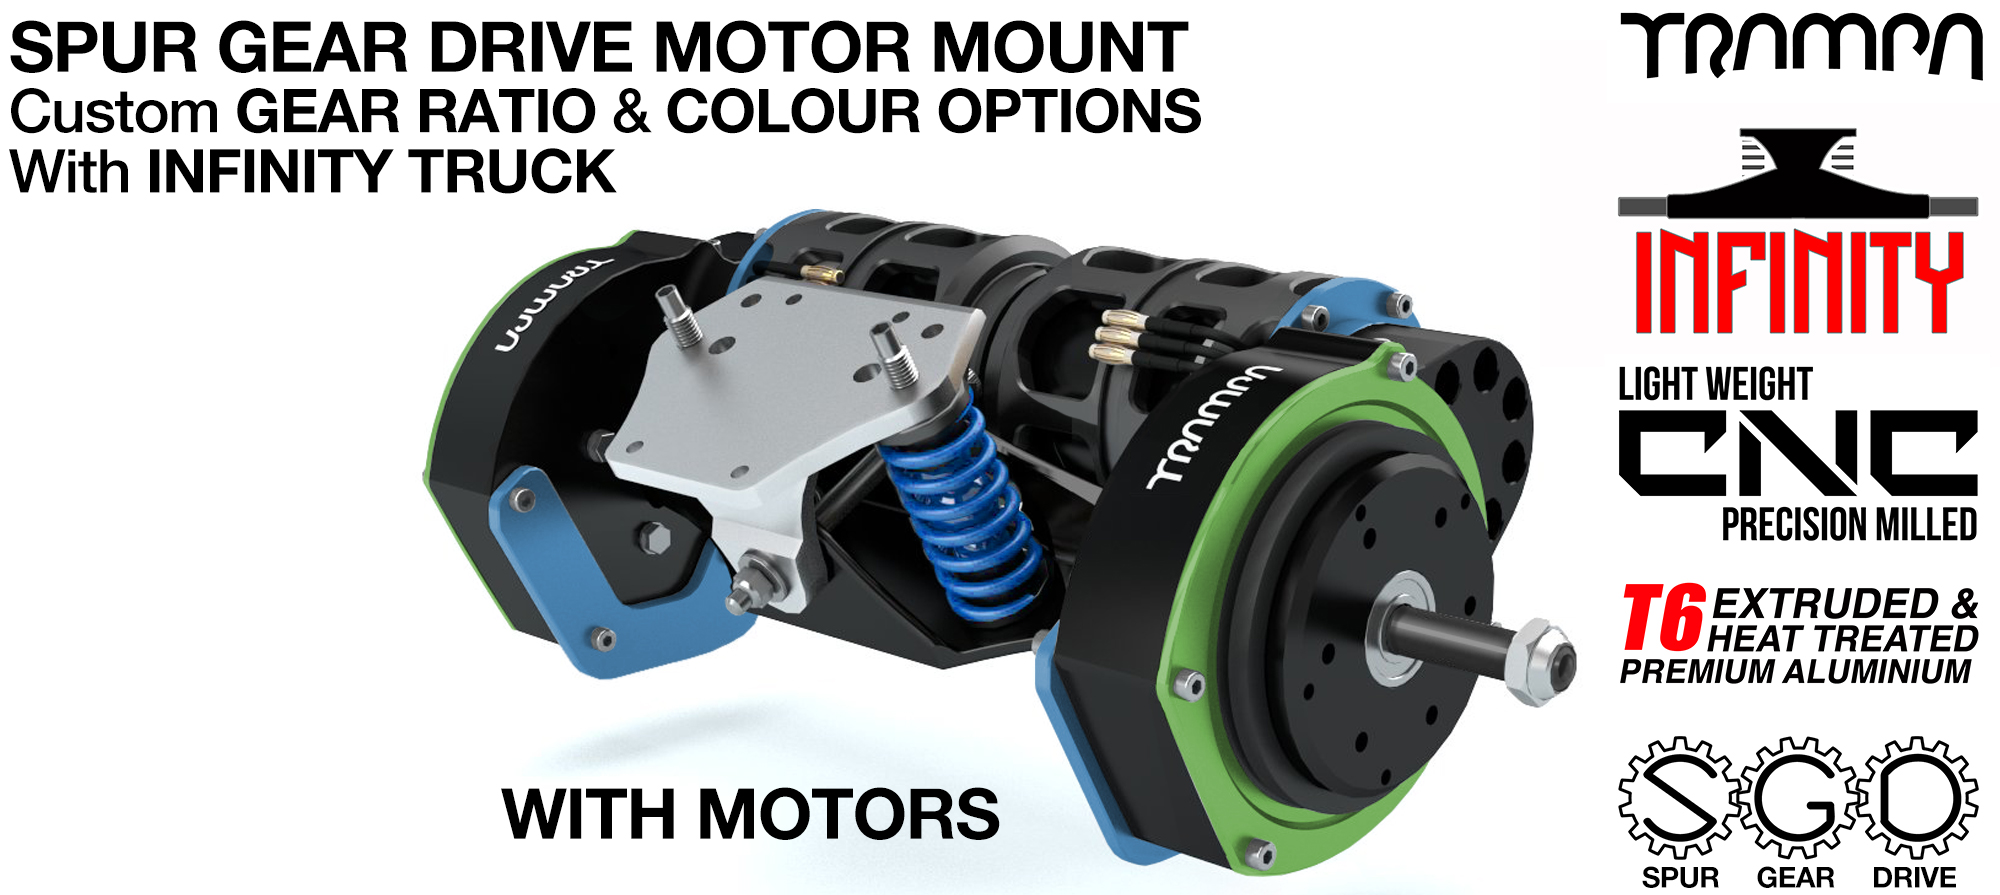 Mountainboard Spur Gear Drive TWIN Motor Mount with Motors & INFINITY Truck